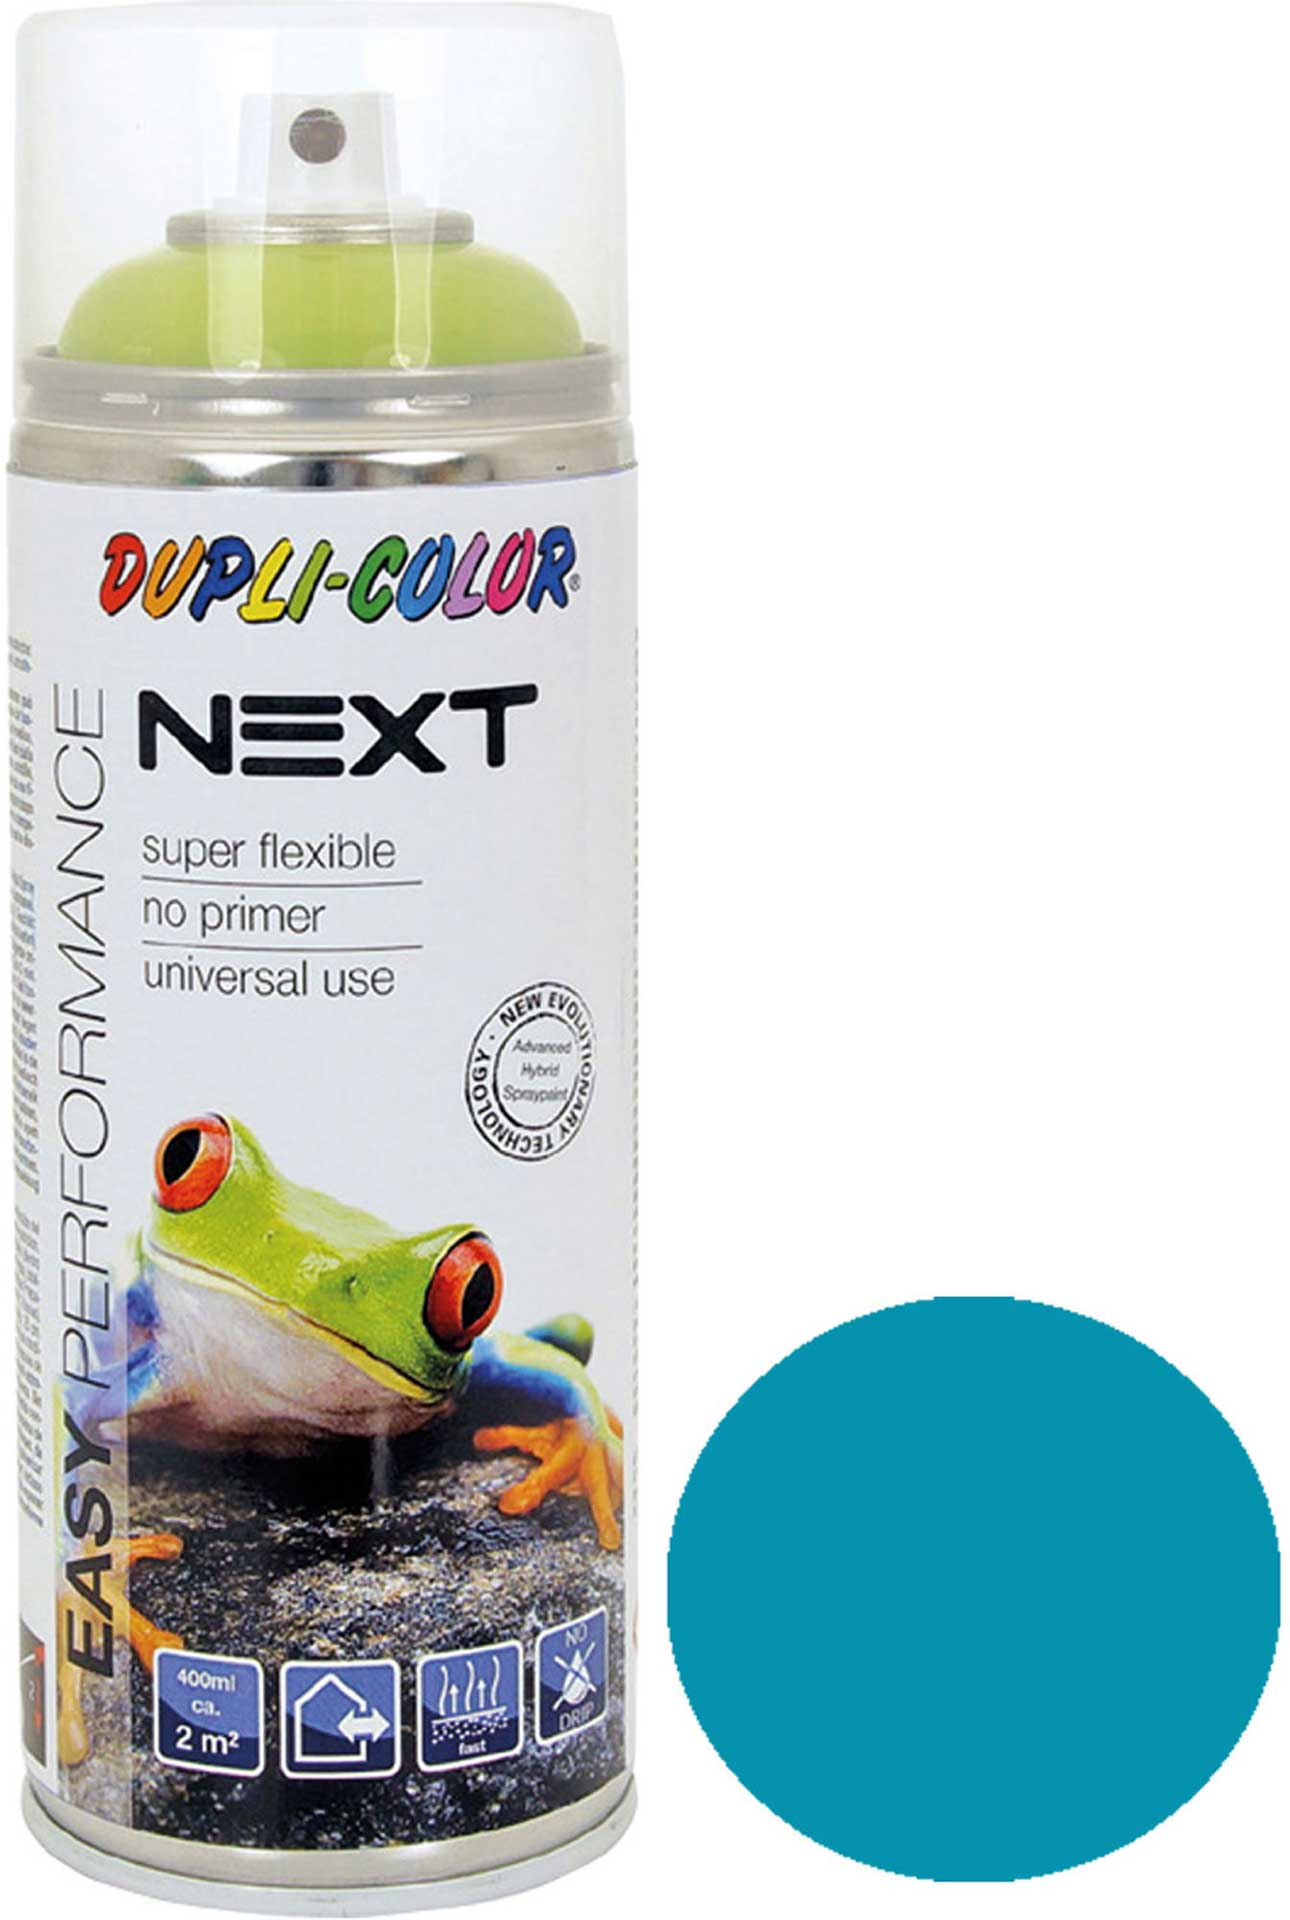 DUPLI-COLOR NEXT SOFIA PETROL SDM. 400ML SPRAY PAINT